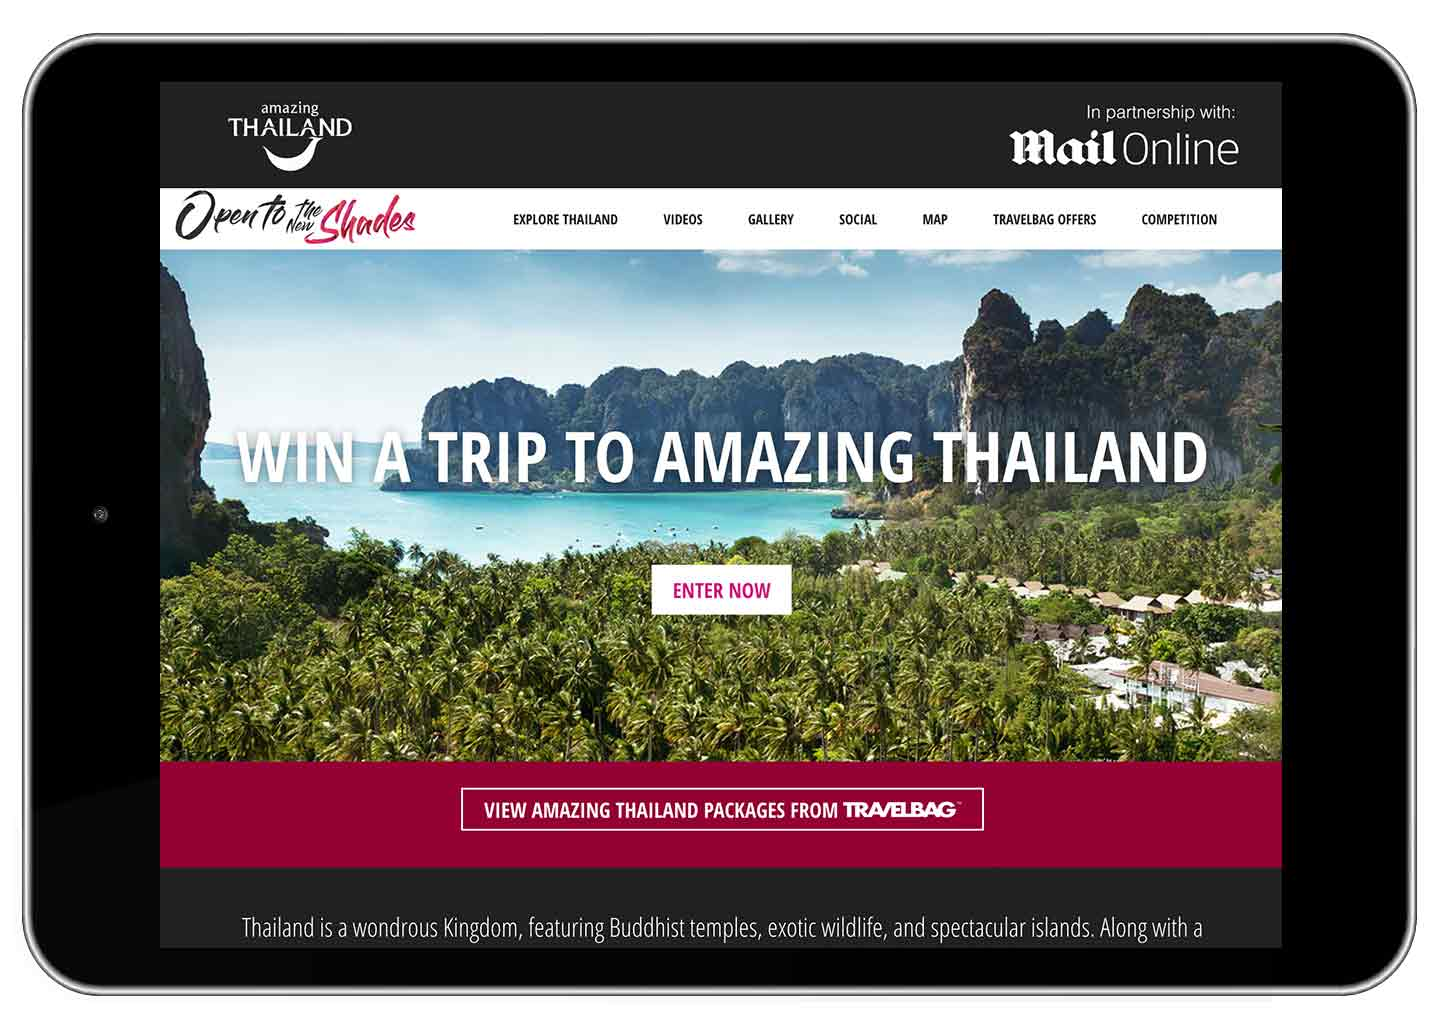 Amazing Thailand Competition - Tablet